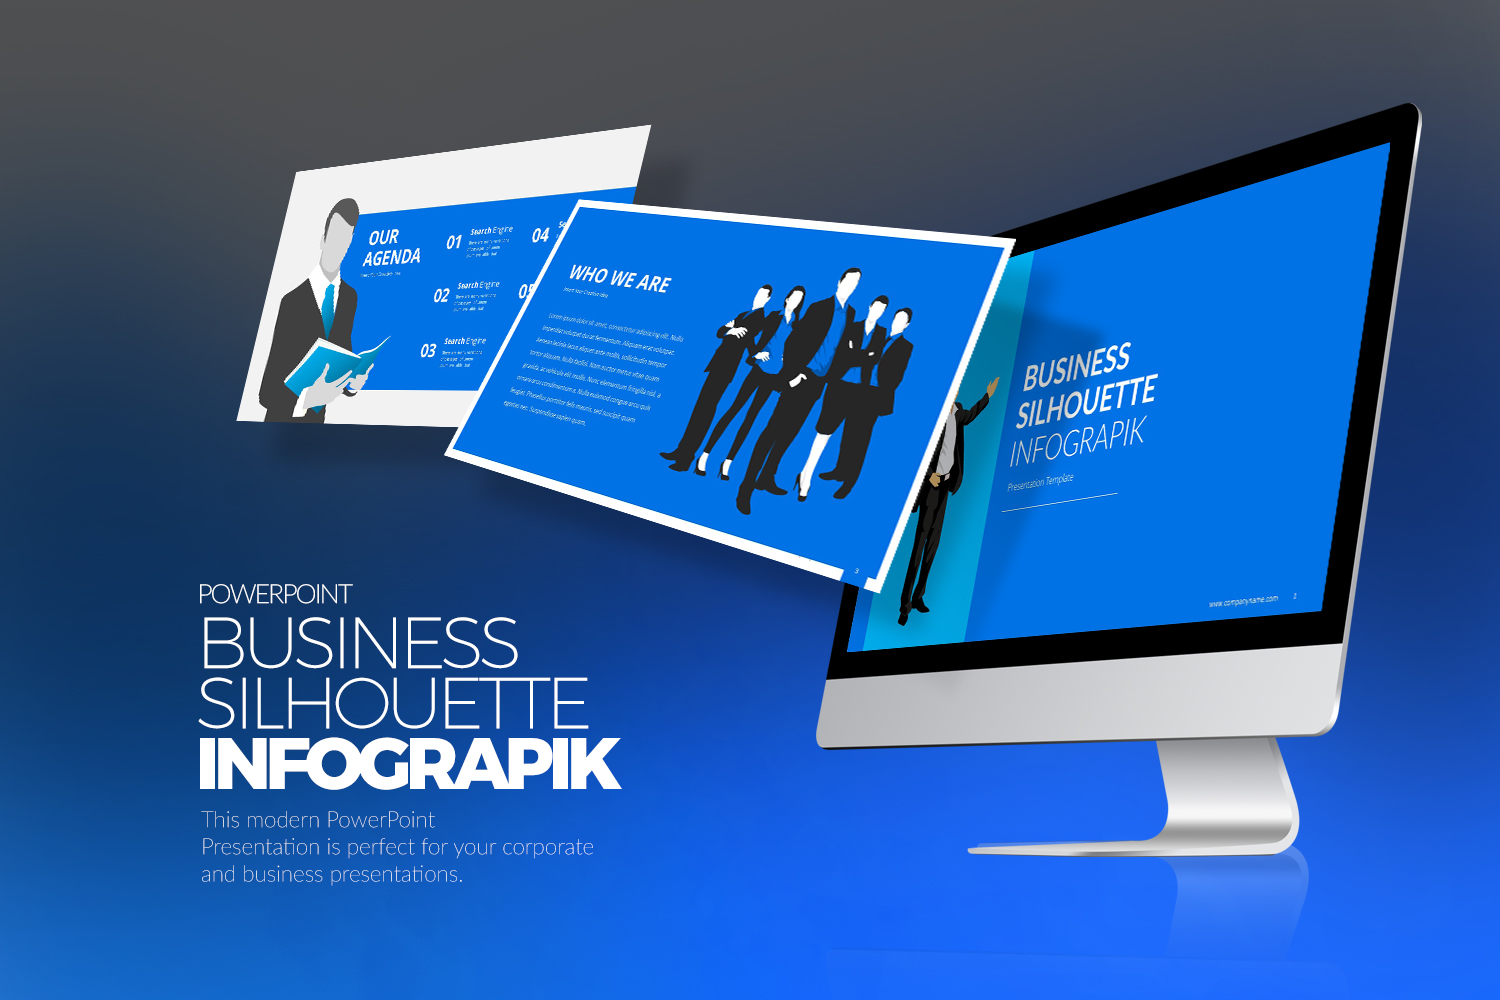 Business Infographic PPTX PowerPoint Template